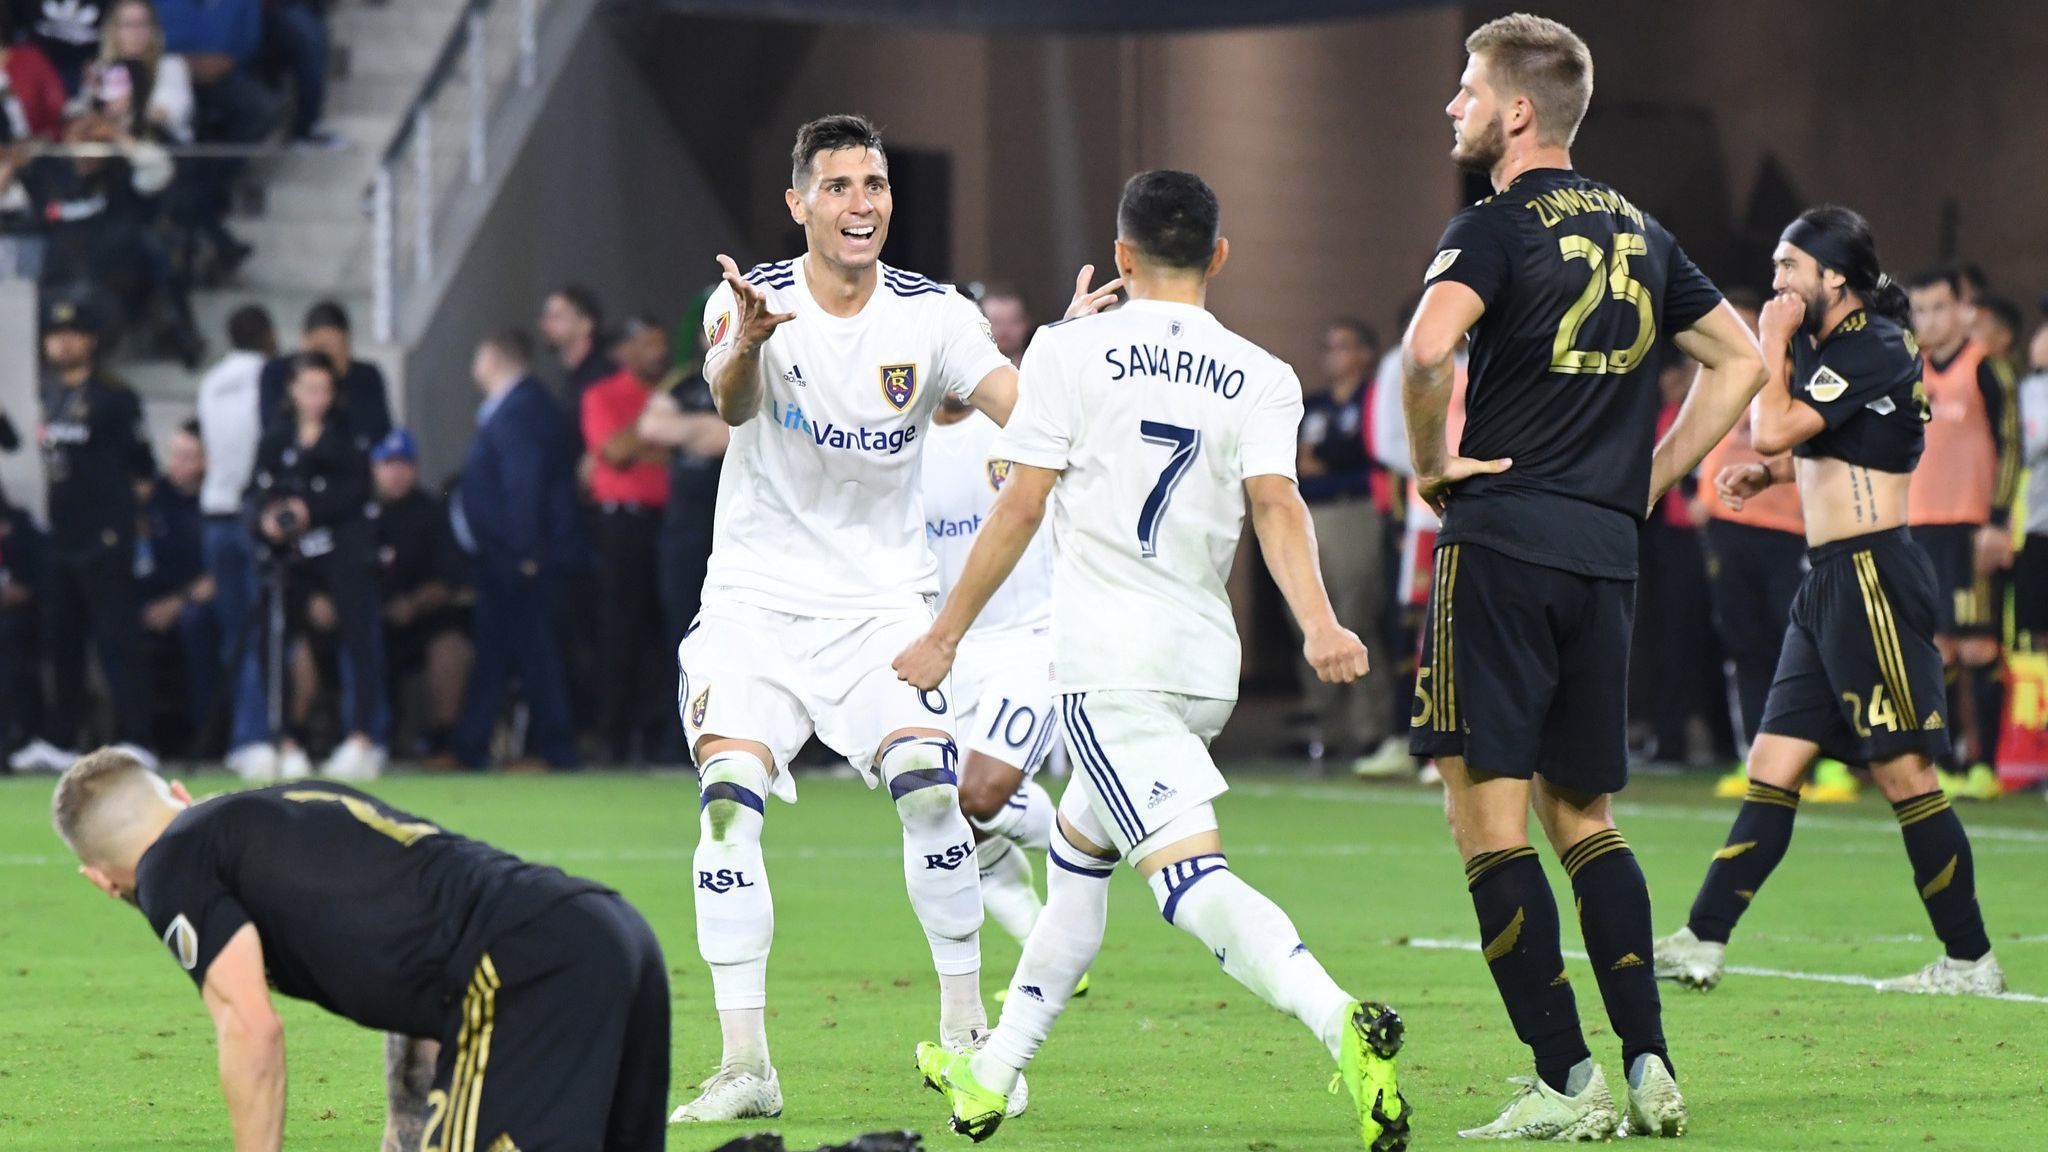 LAFC's first playoff appearance ends with loss to Real Salt Lake